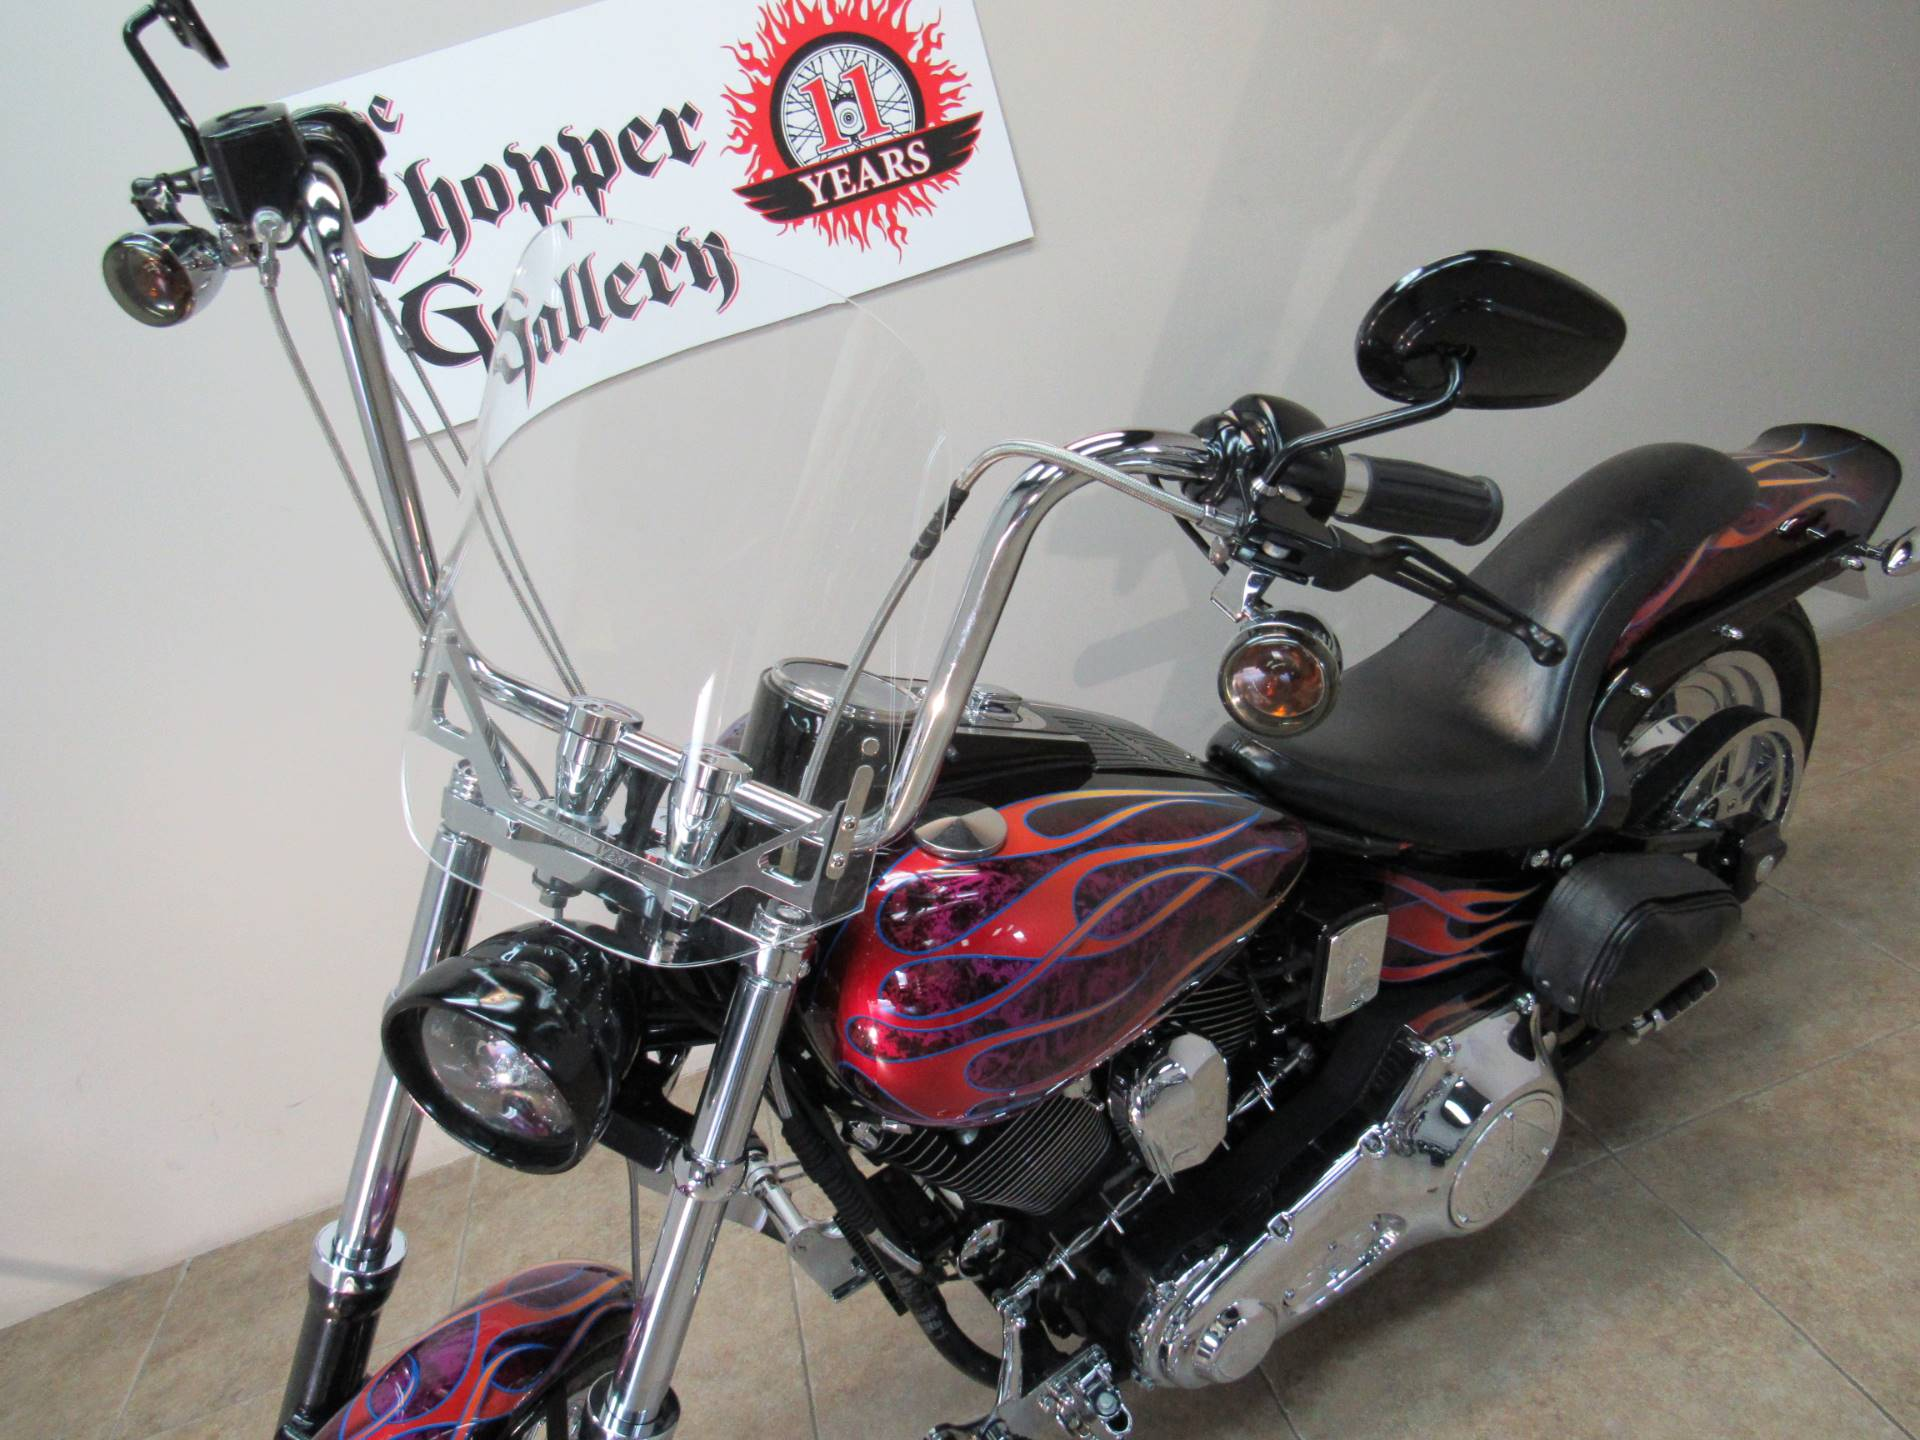 1996 Harley-Davidson softail custom in Temecula, California - Photo 32